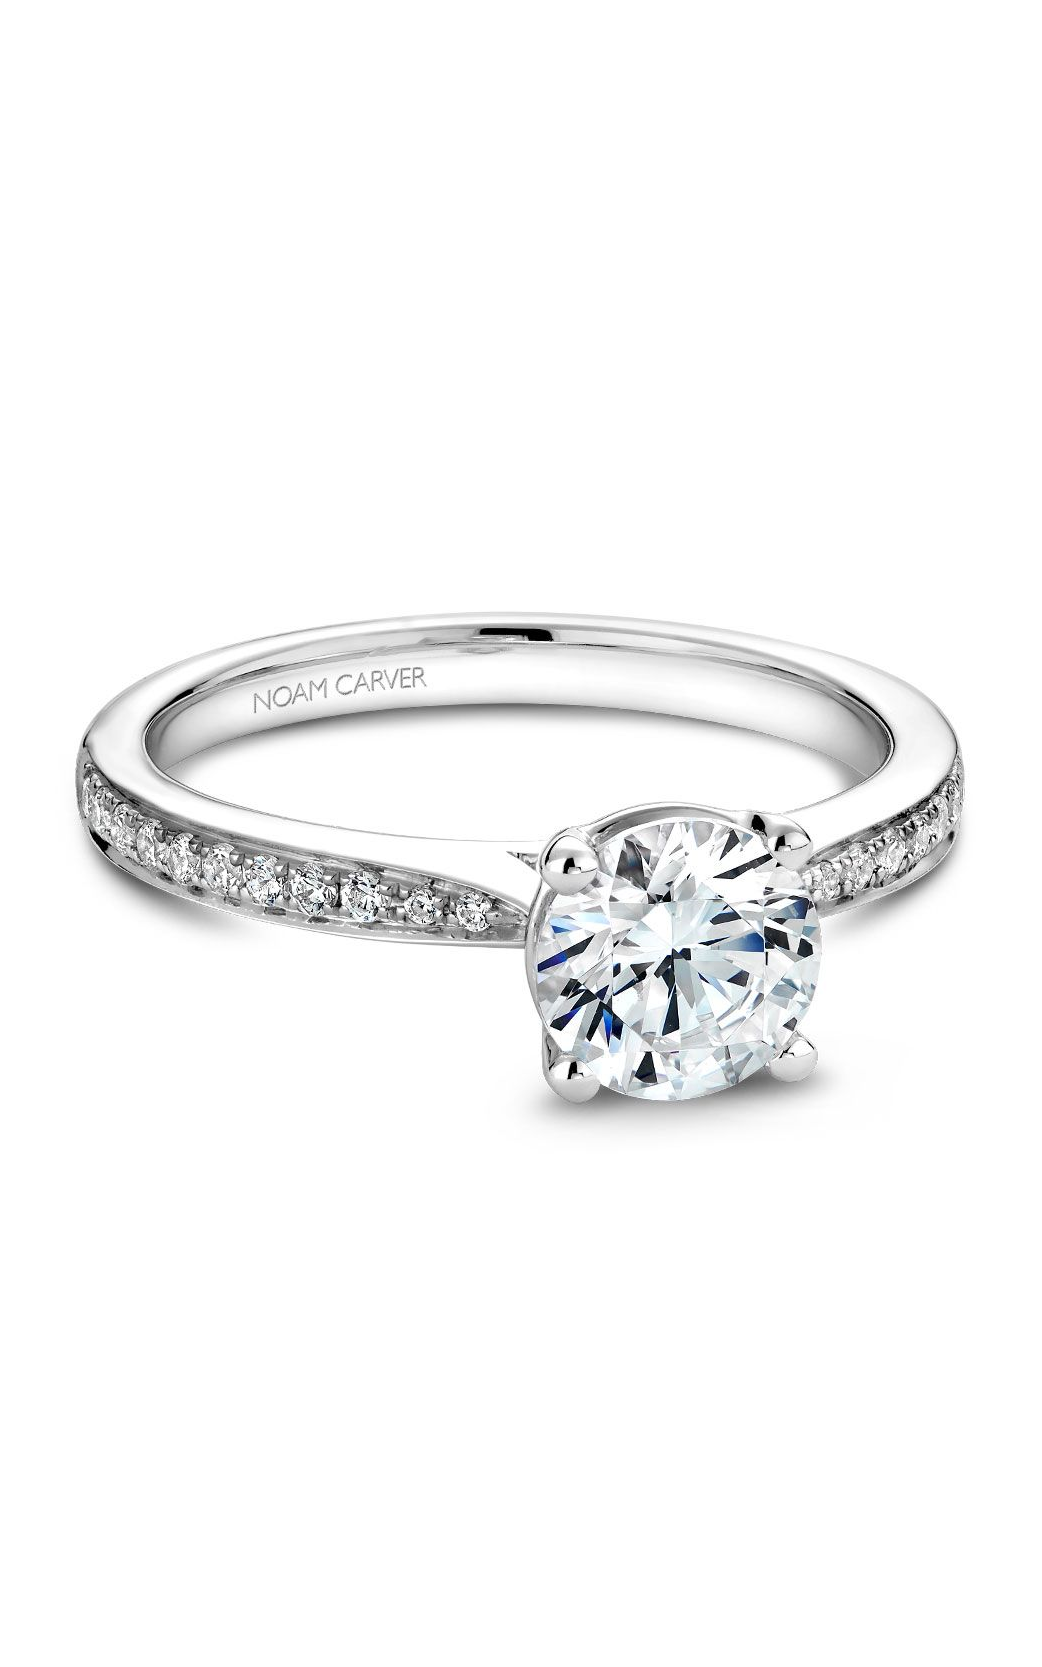 Noam Carver Classic Engagement Ring B018-02A product image